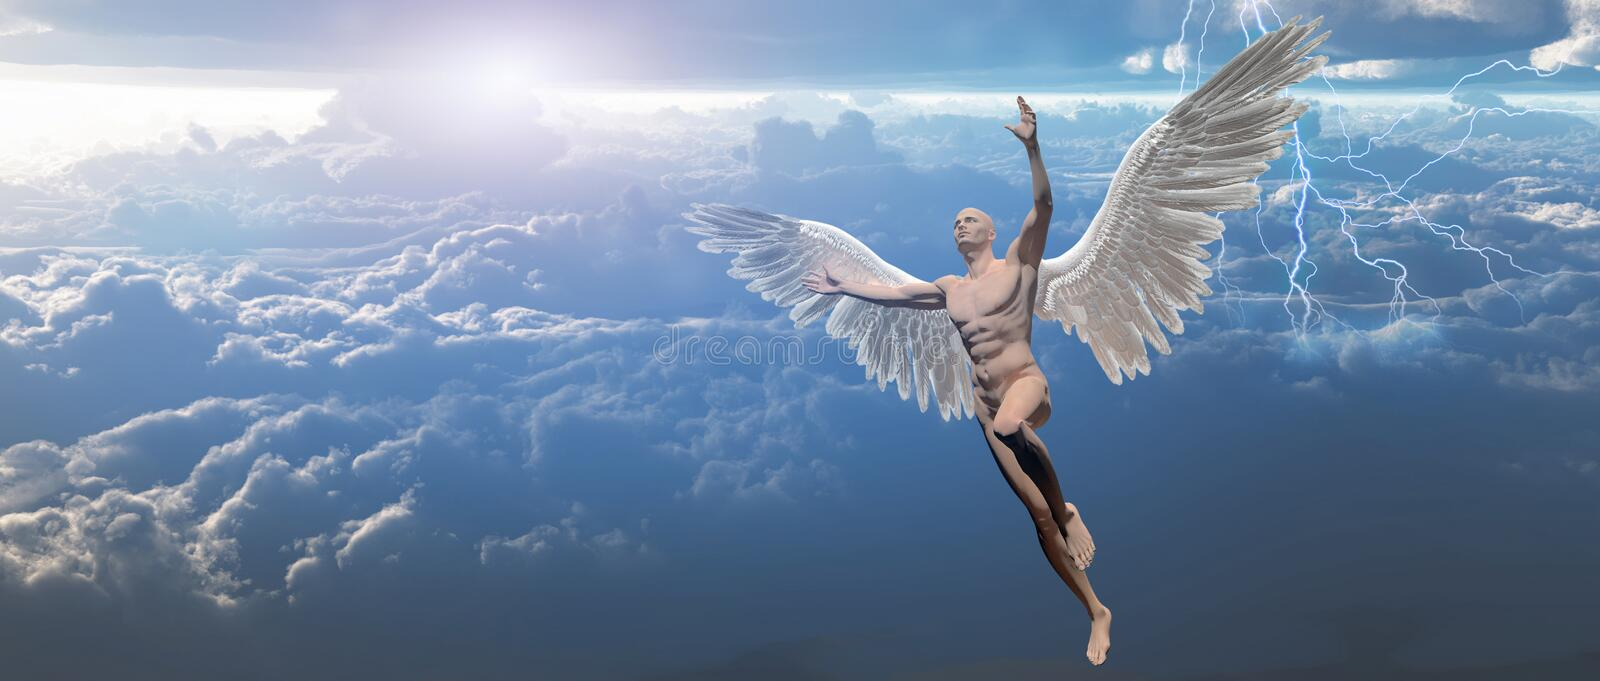 Angel in the sky. Surrealism. Man with angel`s wings flies in cloudy sky. Human elements were created with 3D software and are not from any actual human vector illustration